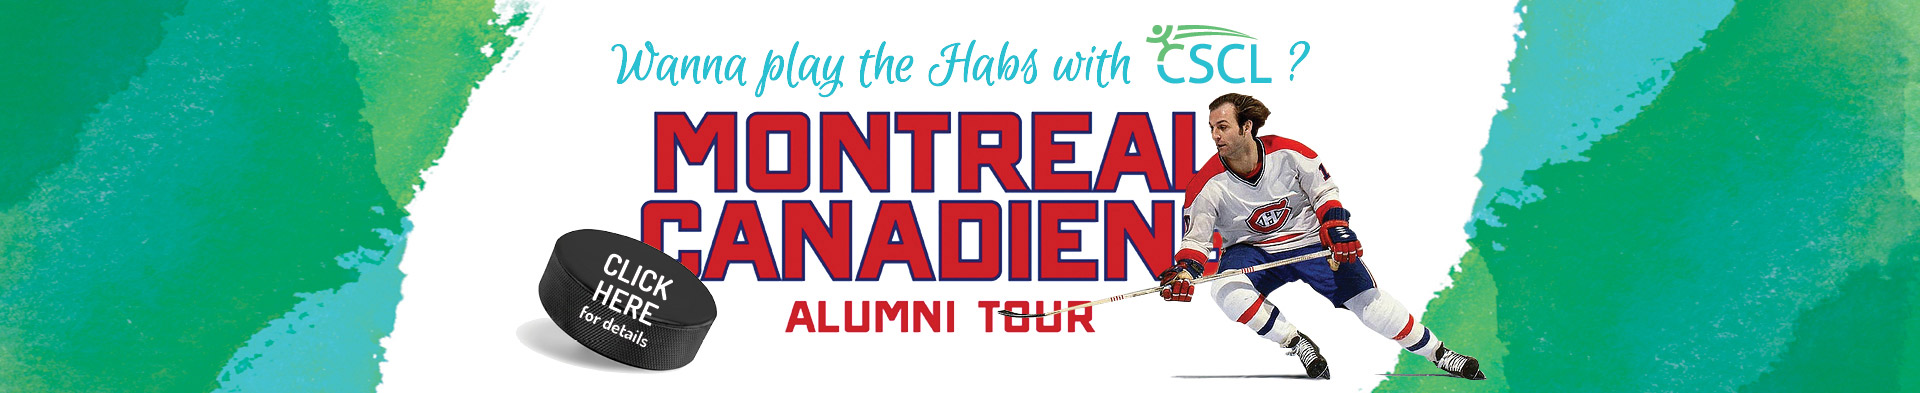 Play the Habs with us